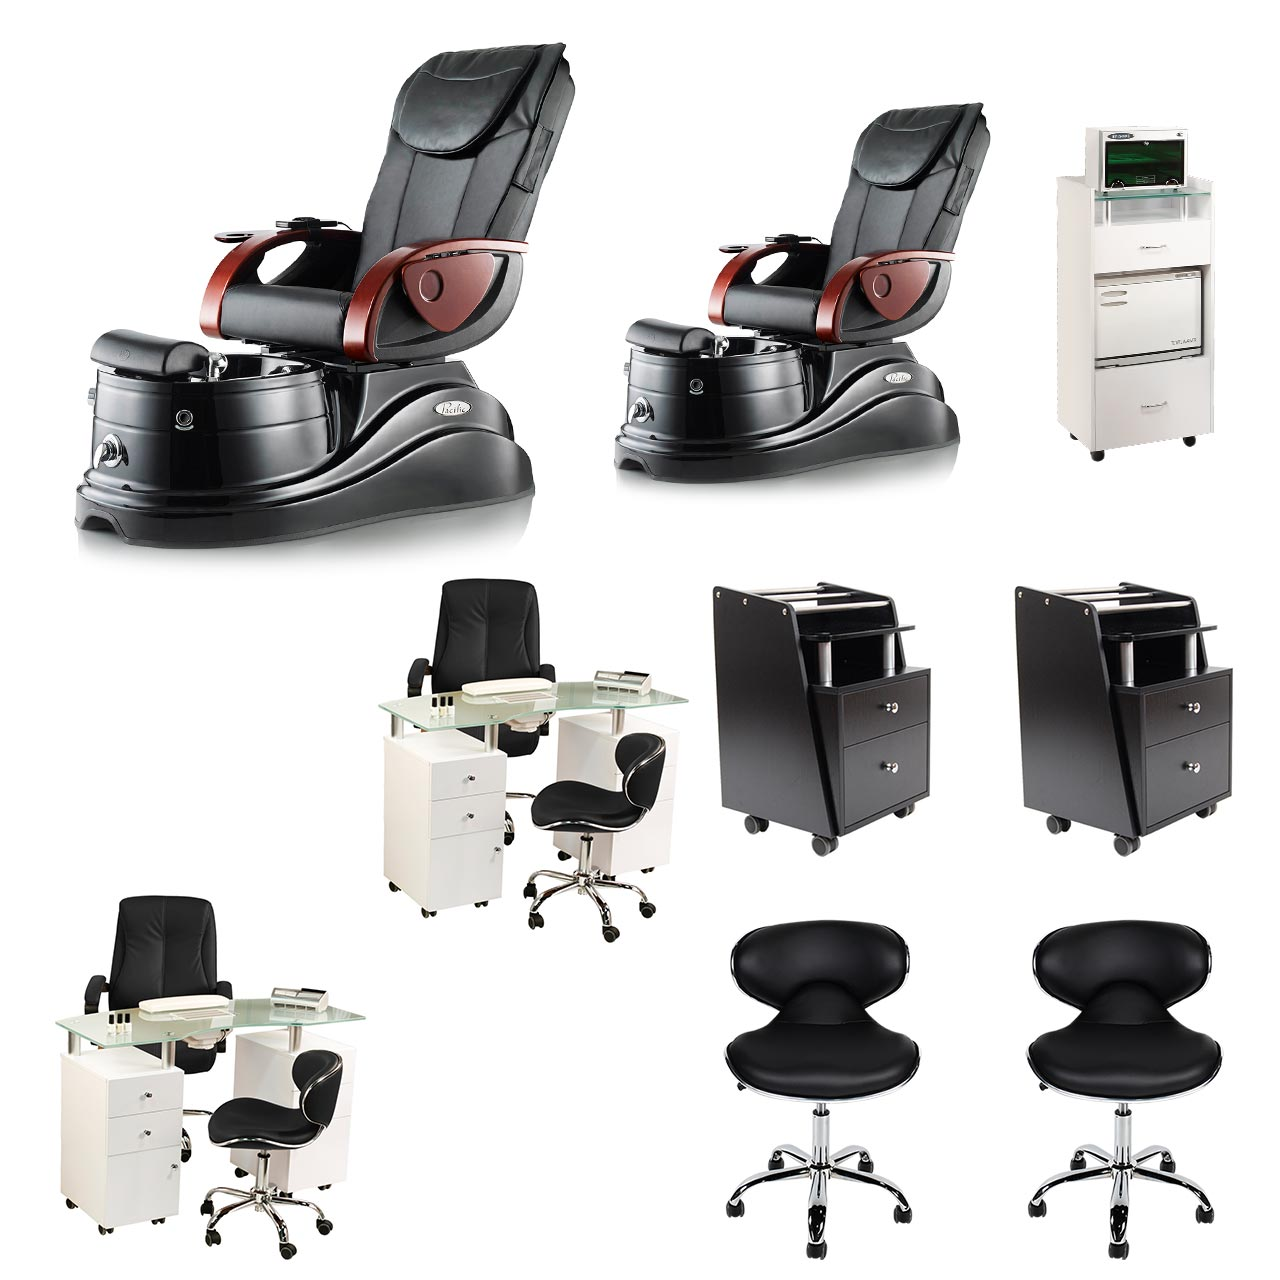 Black 2 Pacific AX Nail Salon Furniture Package Deal with 2 Manicure Stations  main product image